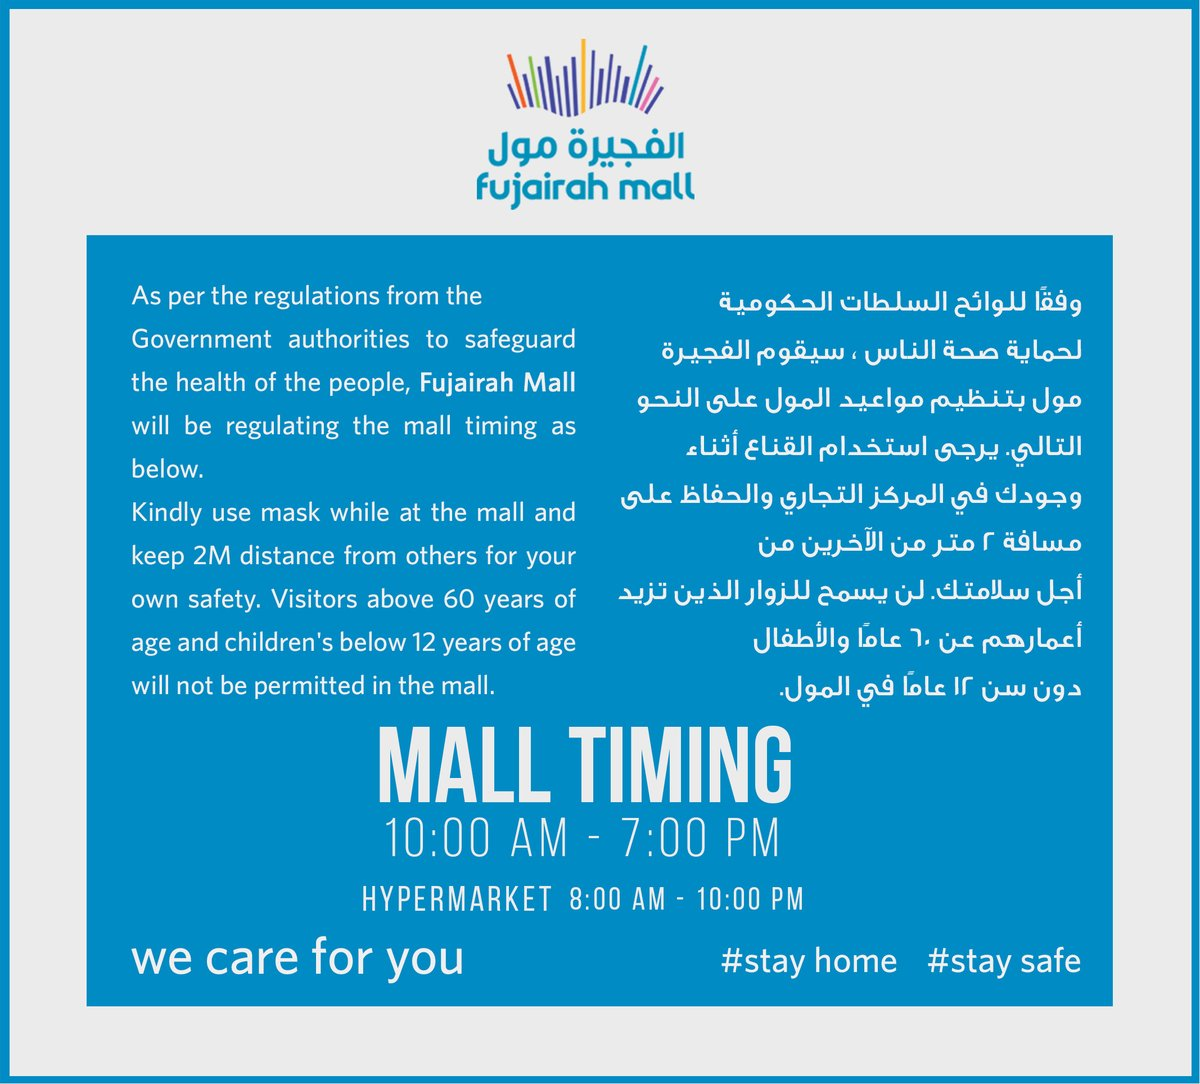 New Mall Timings. https://t.co/skQOE1xxPi